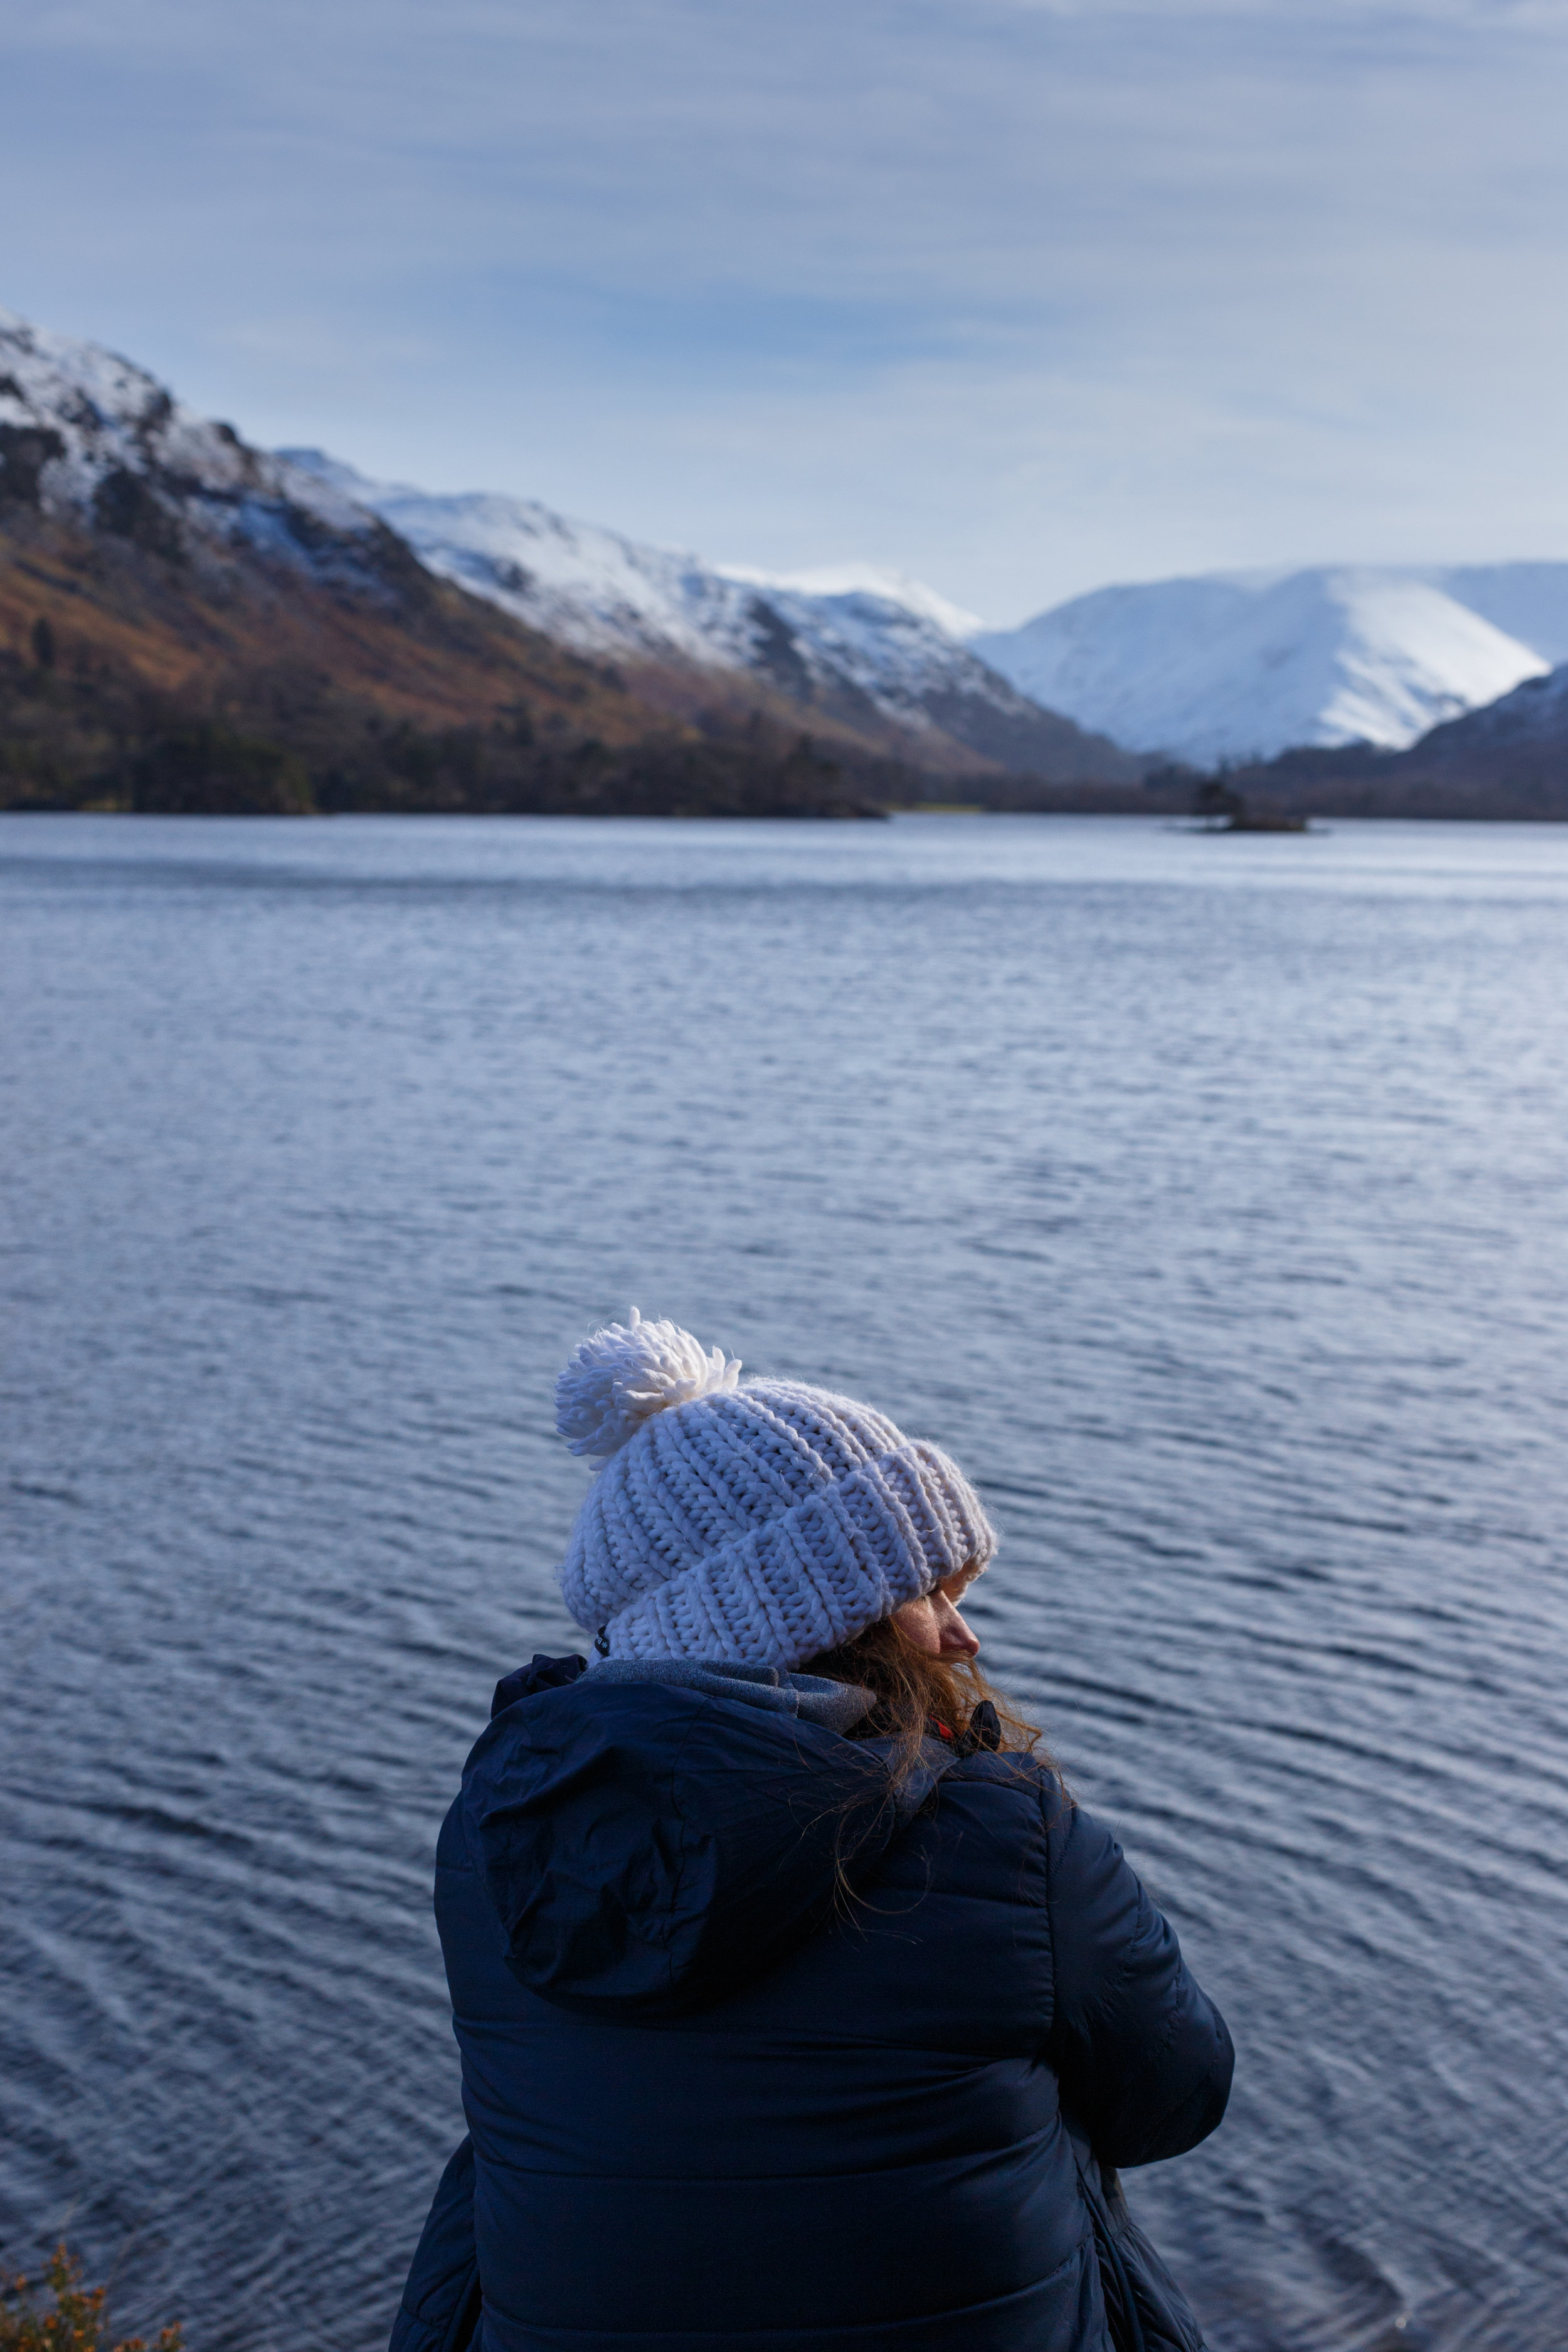 Bex admiring the view